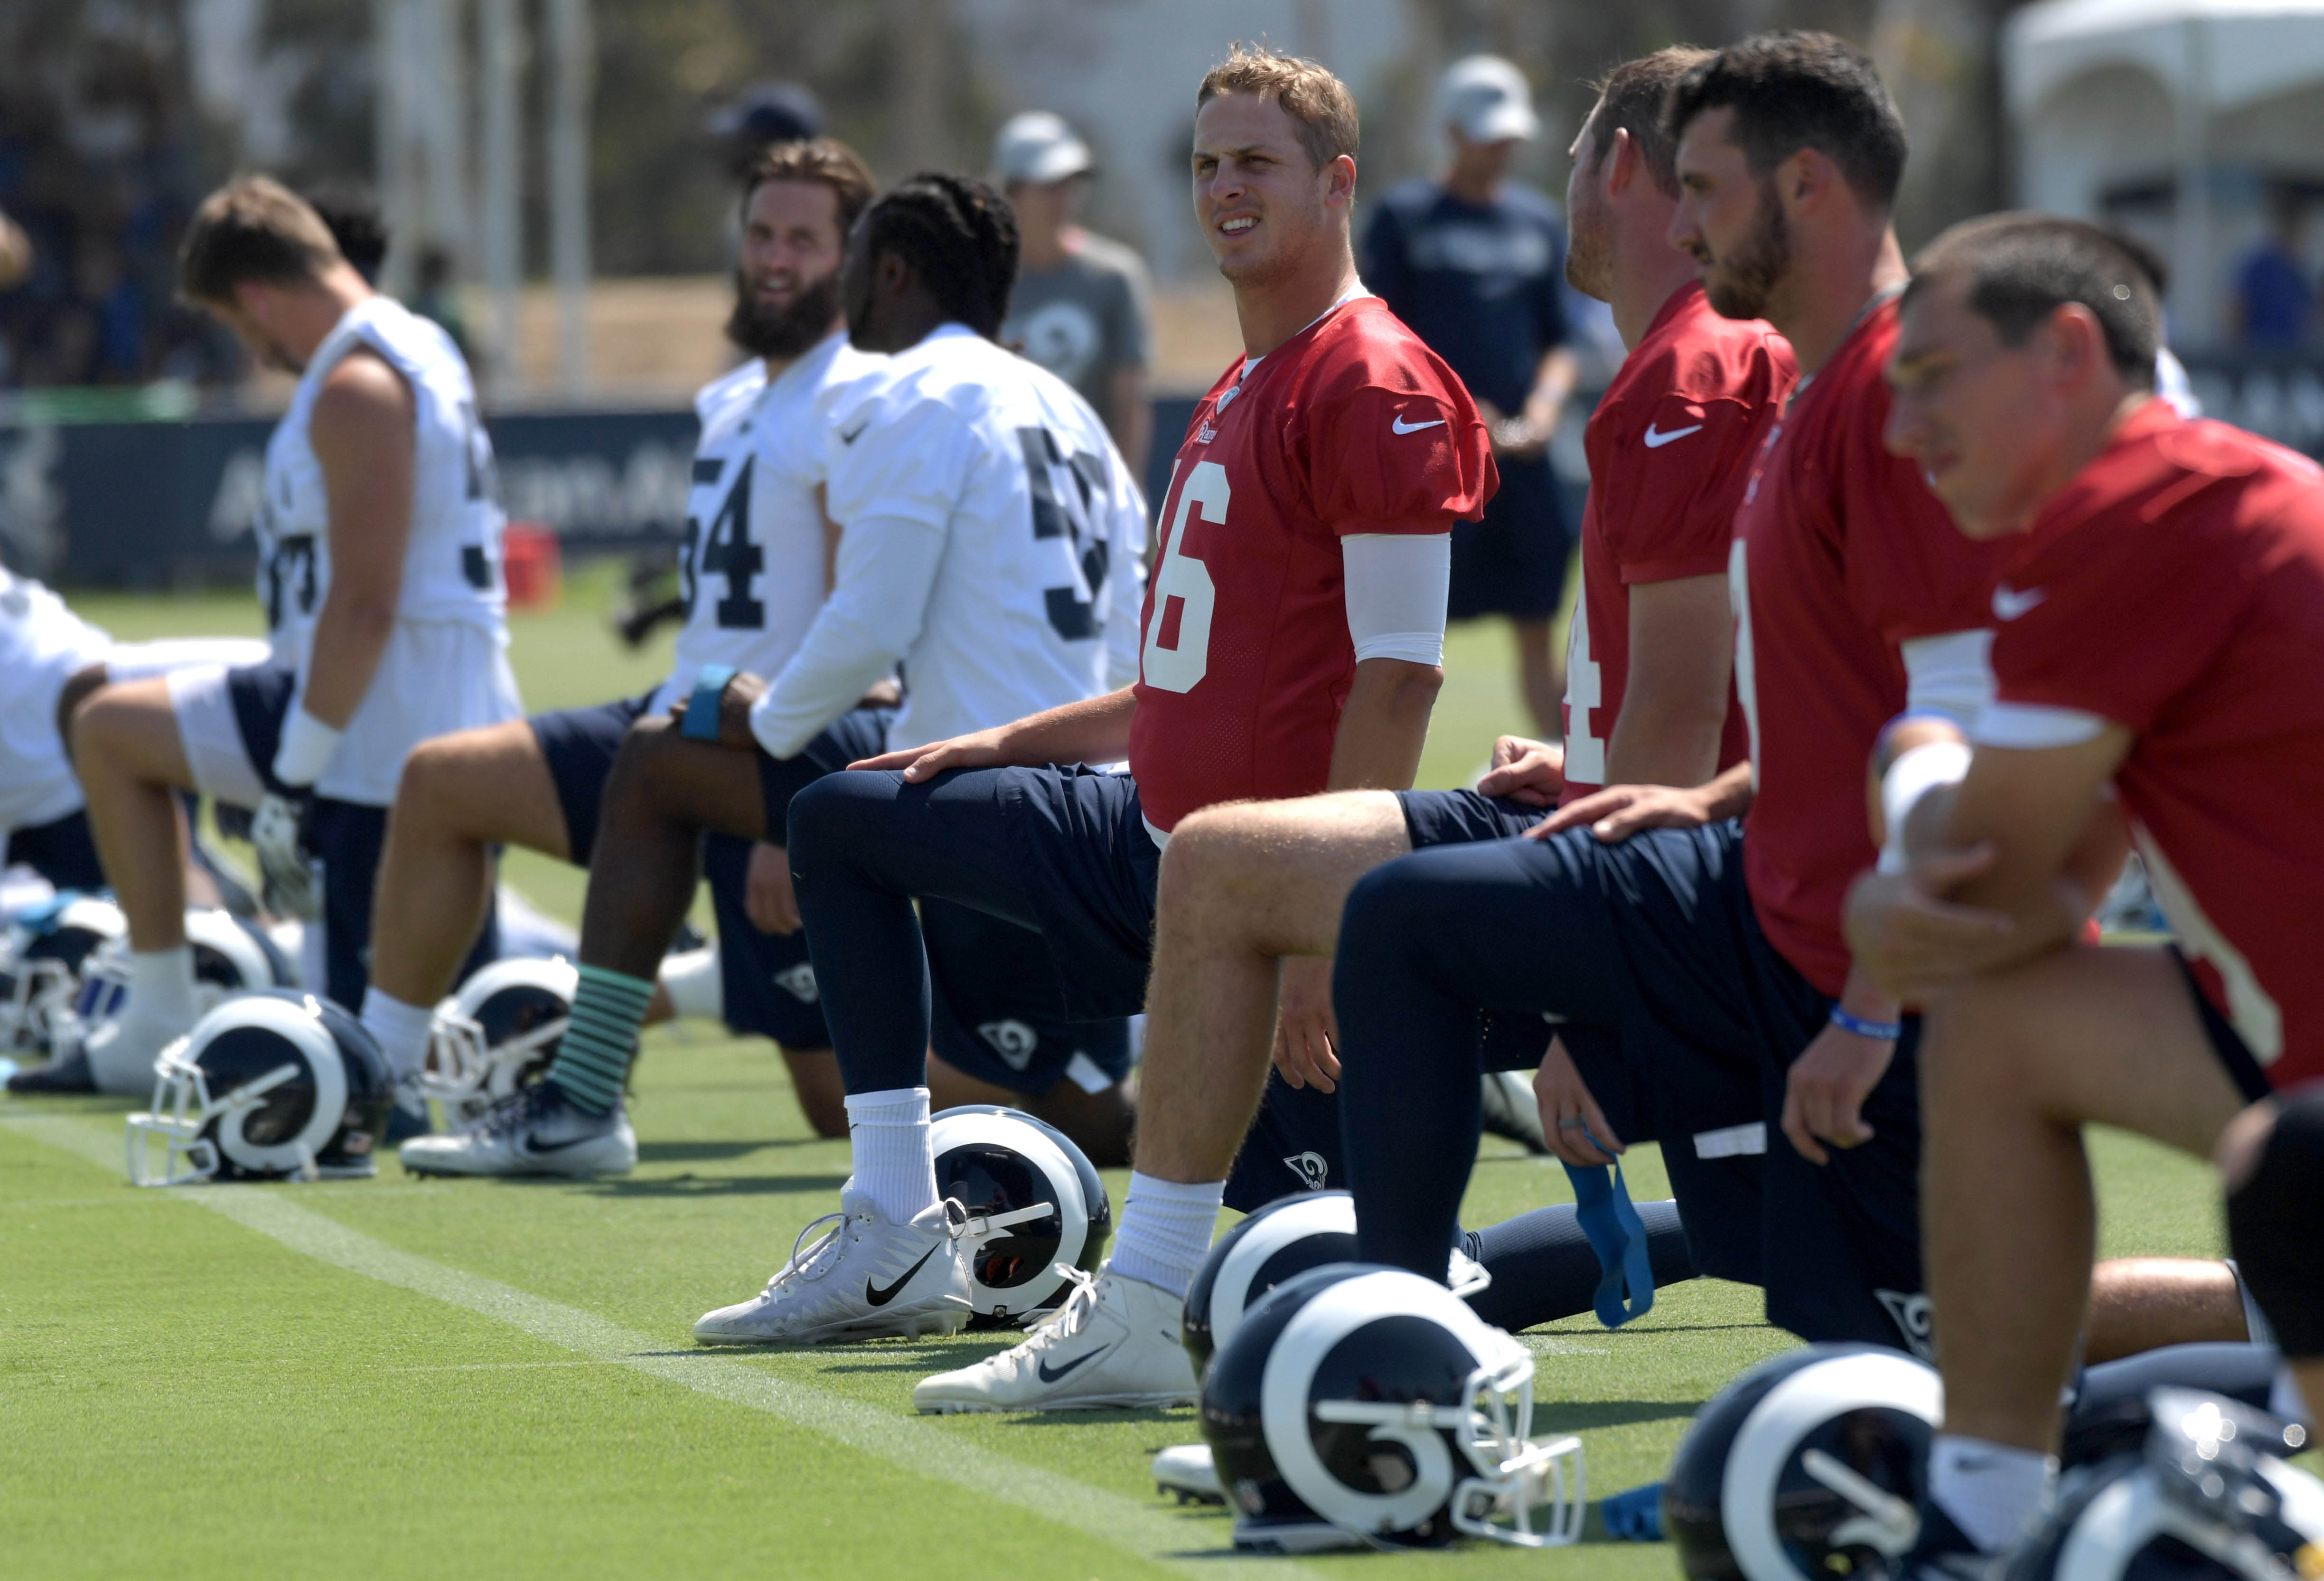 Los Angeles Rams QB Jared Goff stretches during training camp, July 27, 2018.